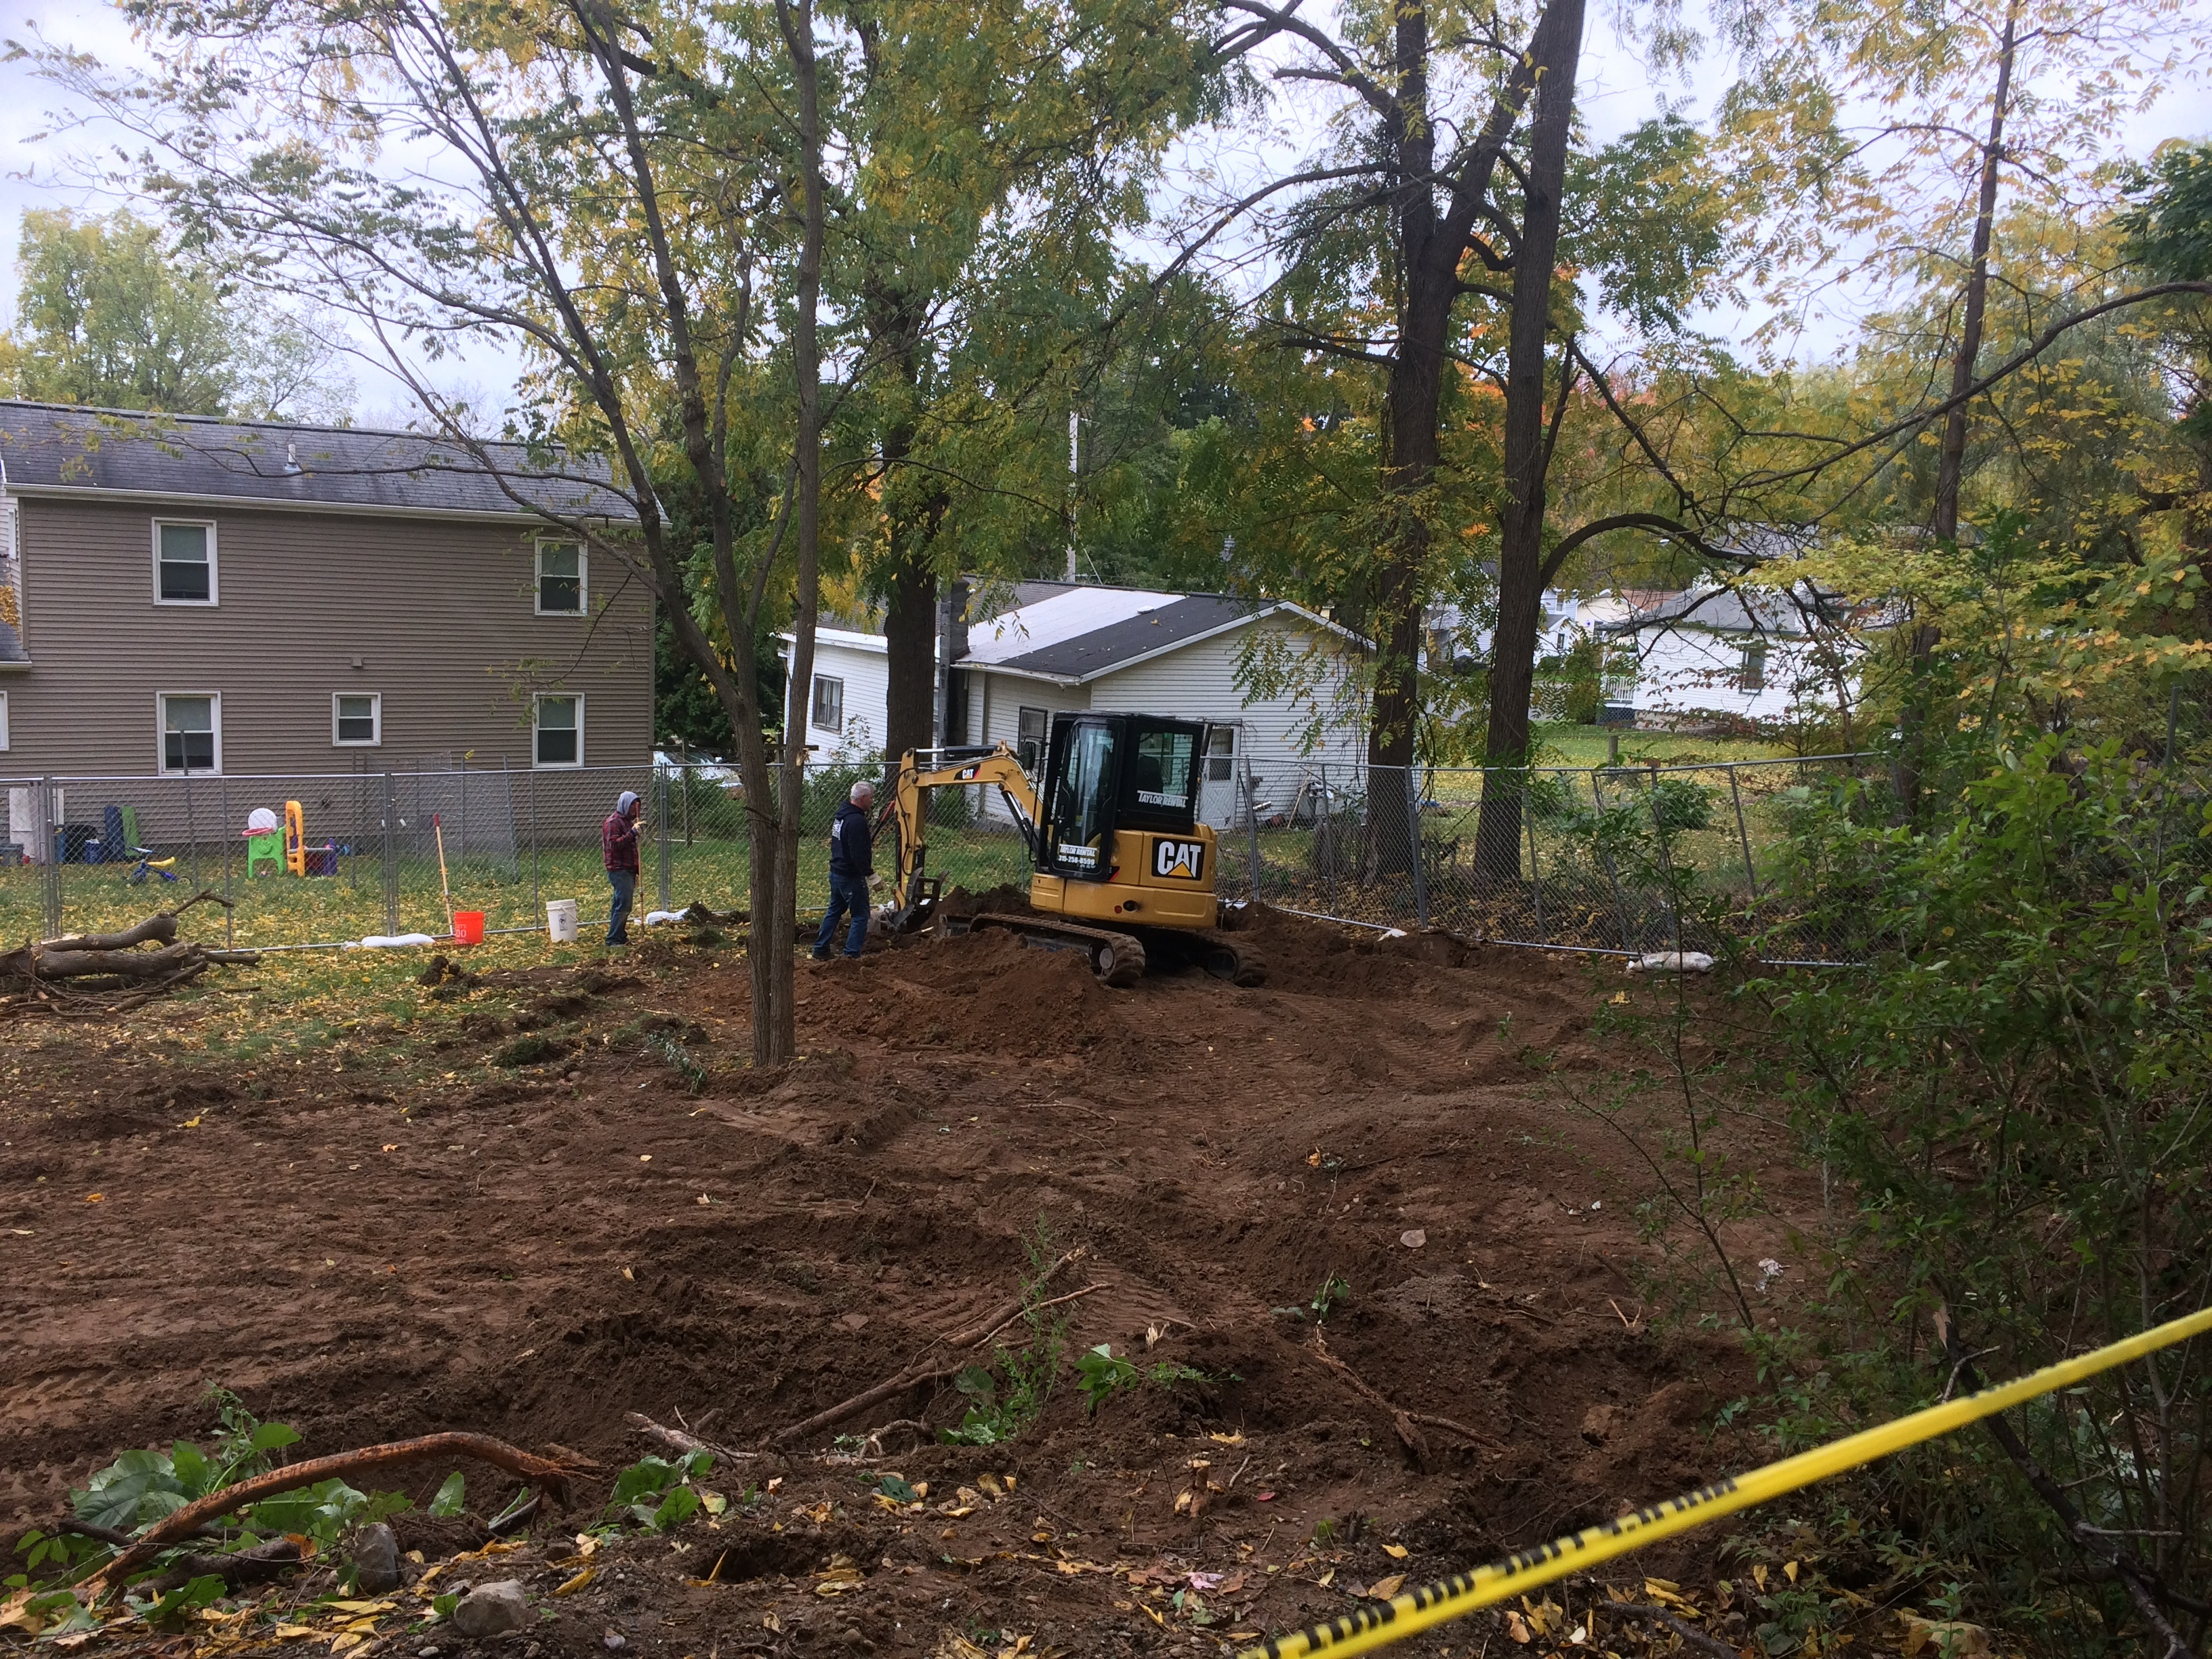 A view from Fort Hill Cemetery in Auburn as workers excavate for the remains of prisoners in the yard of Eric and Alicia Johnson. (Sean Kirst/Provided image)